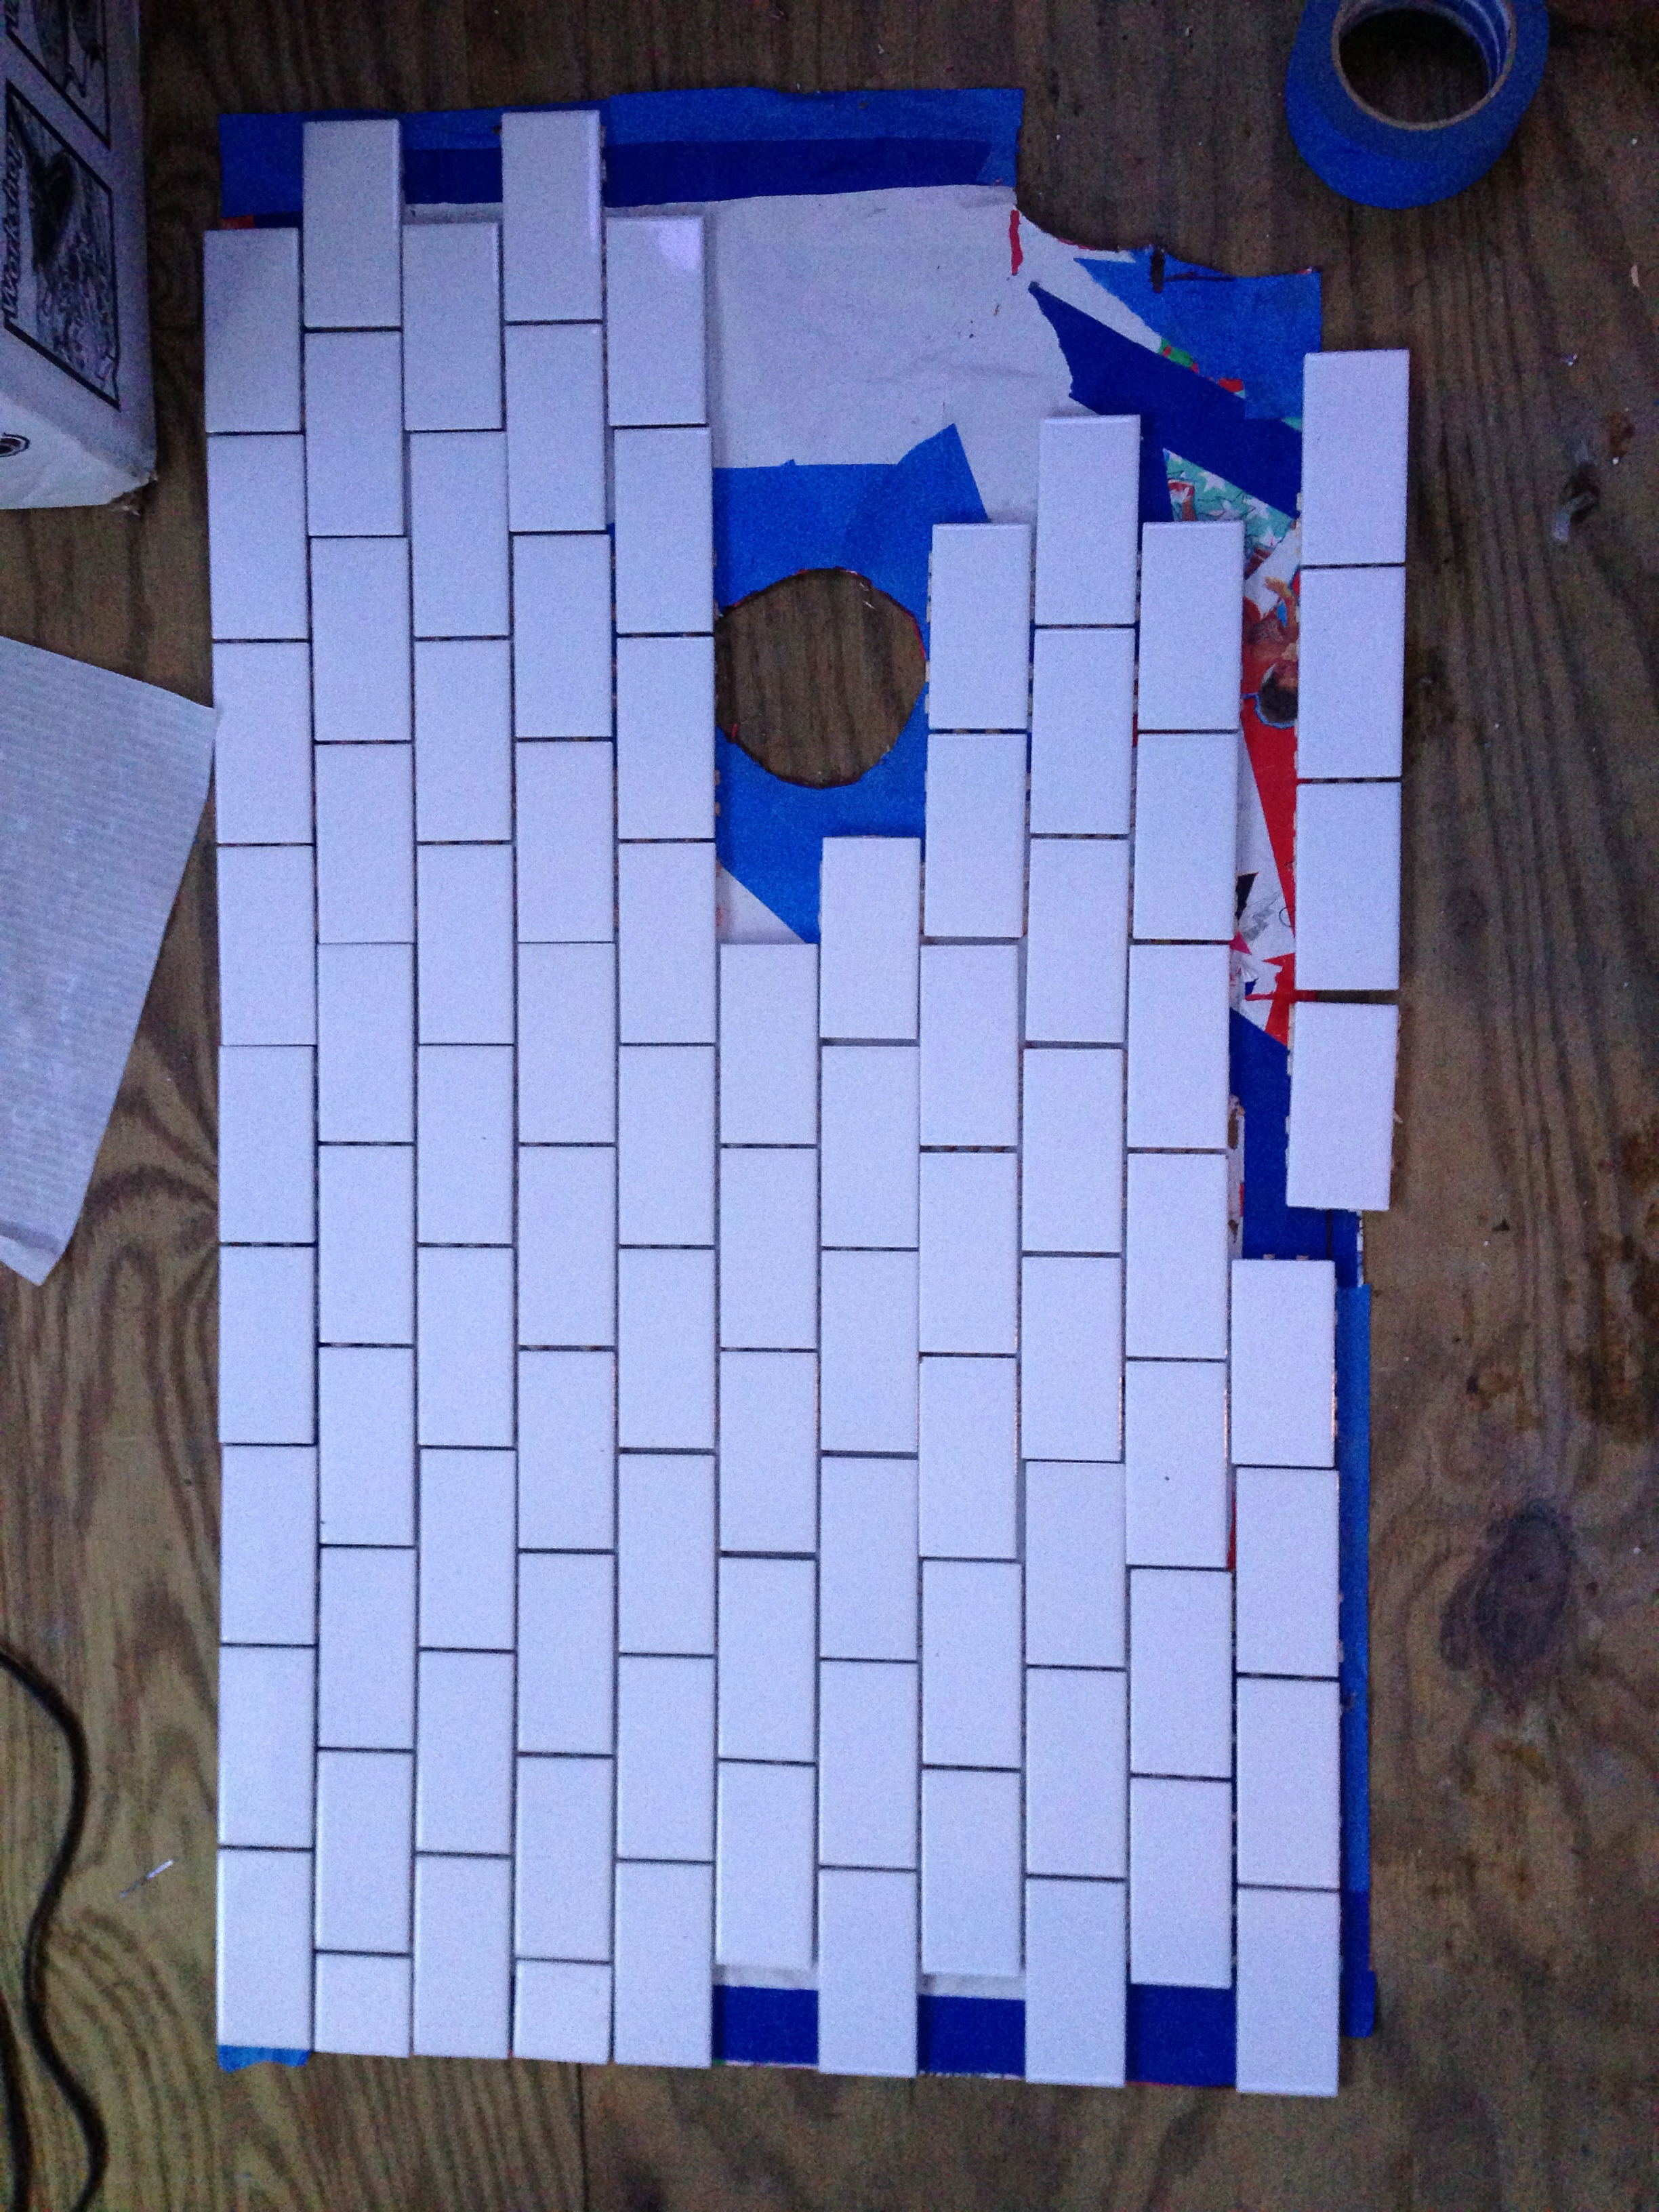 Laying out the tile pattern.